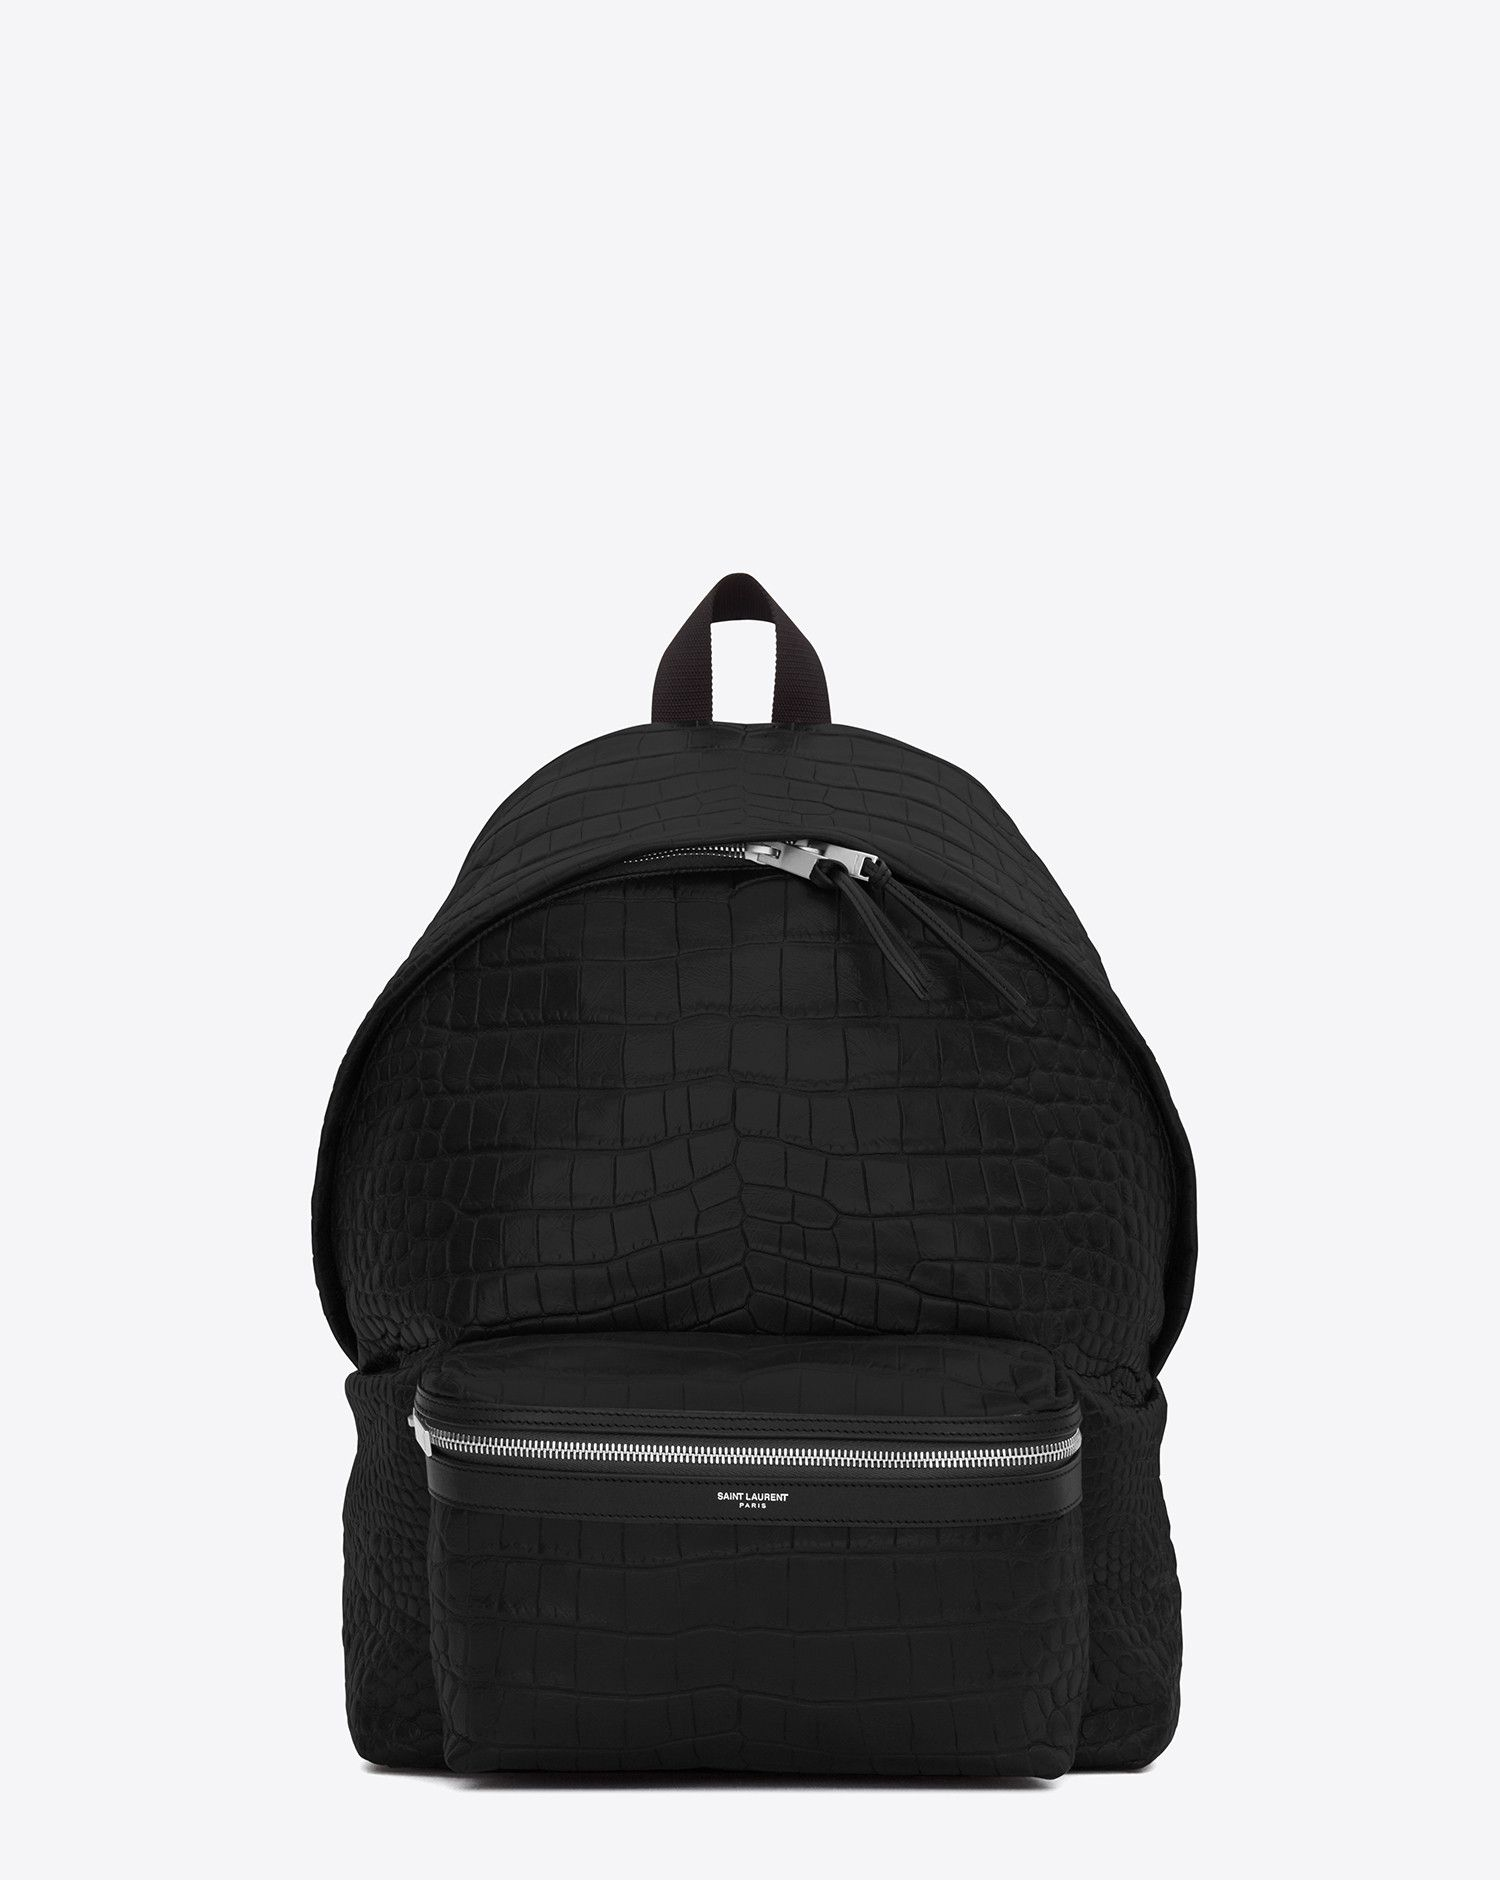 9f1341932ab Saint Laurent Classic City Backpack In Black Crocodile Embossed Leather |  YSL.com